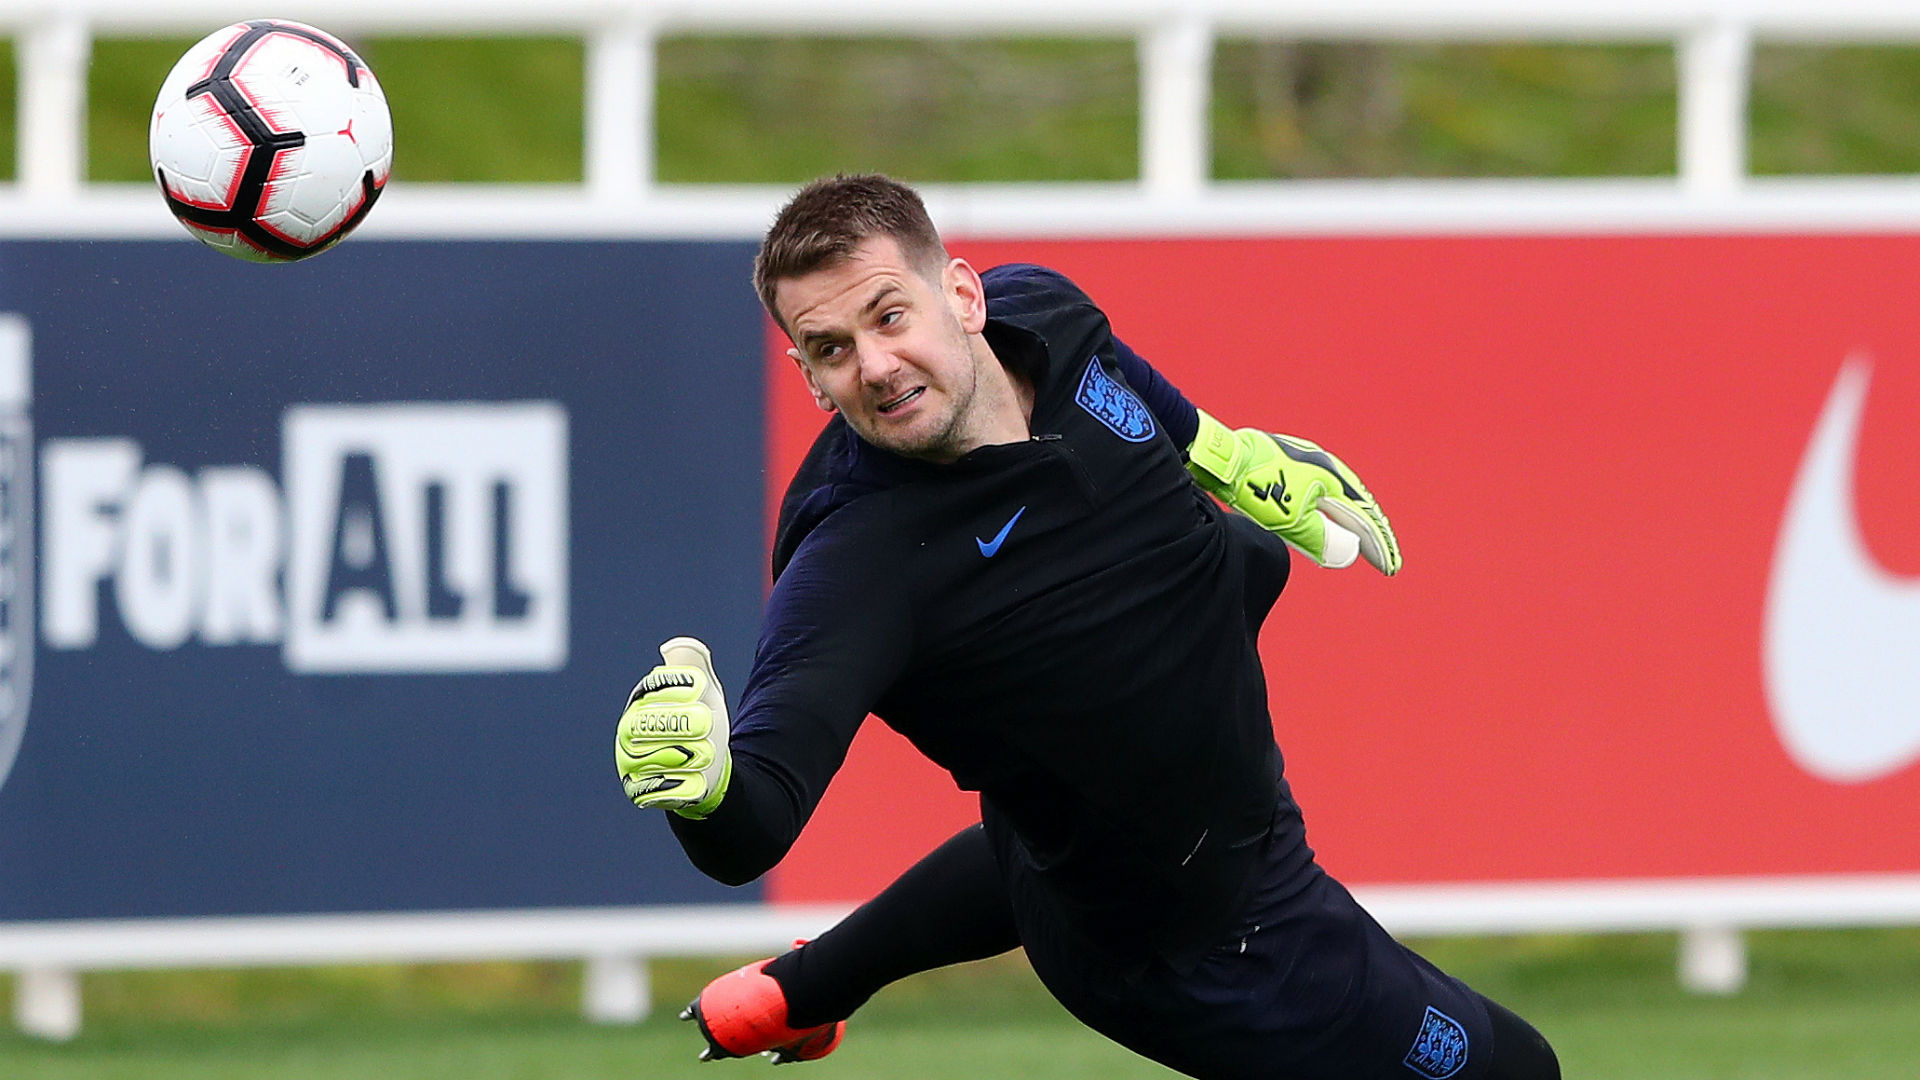 Heaton hails 'outstanding' England rival Pickford